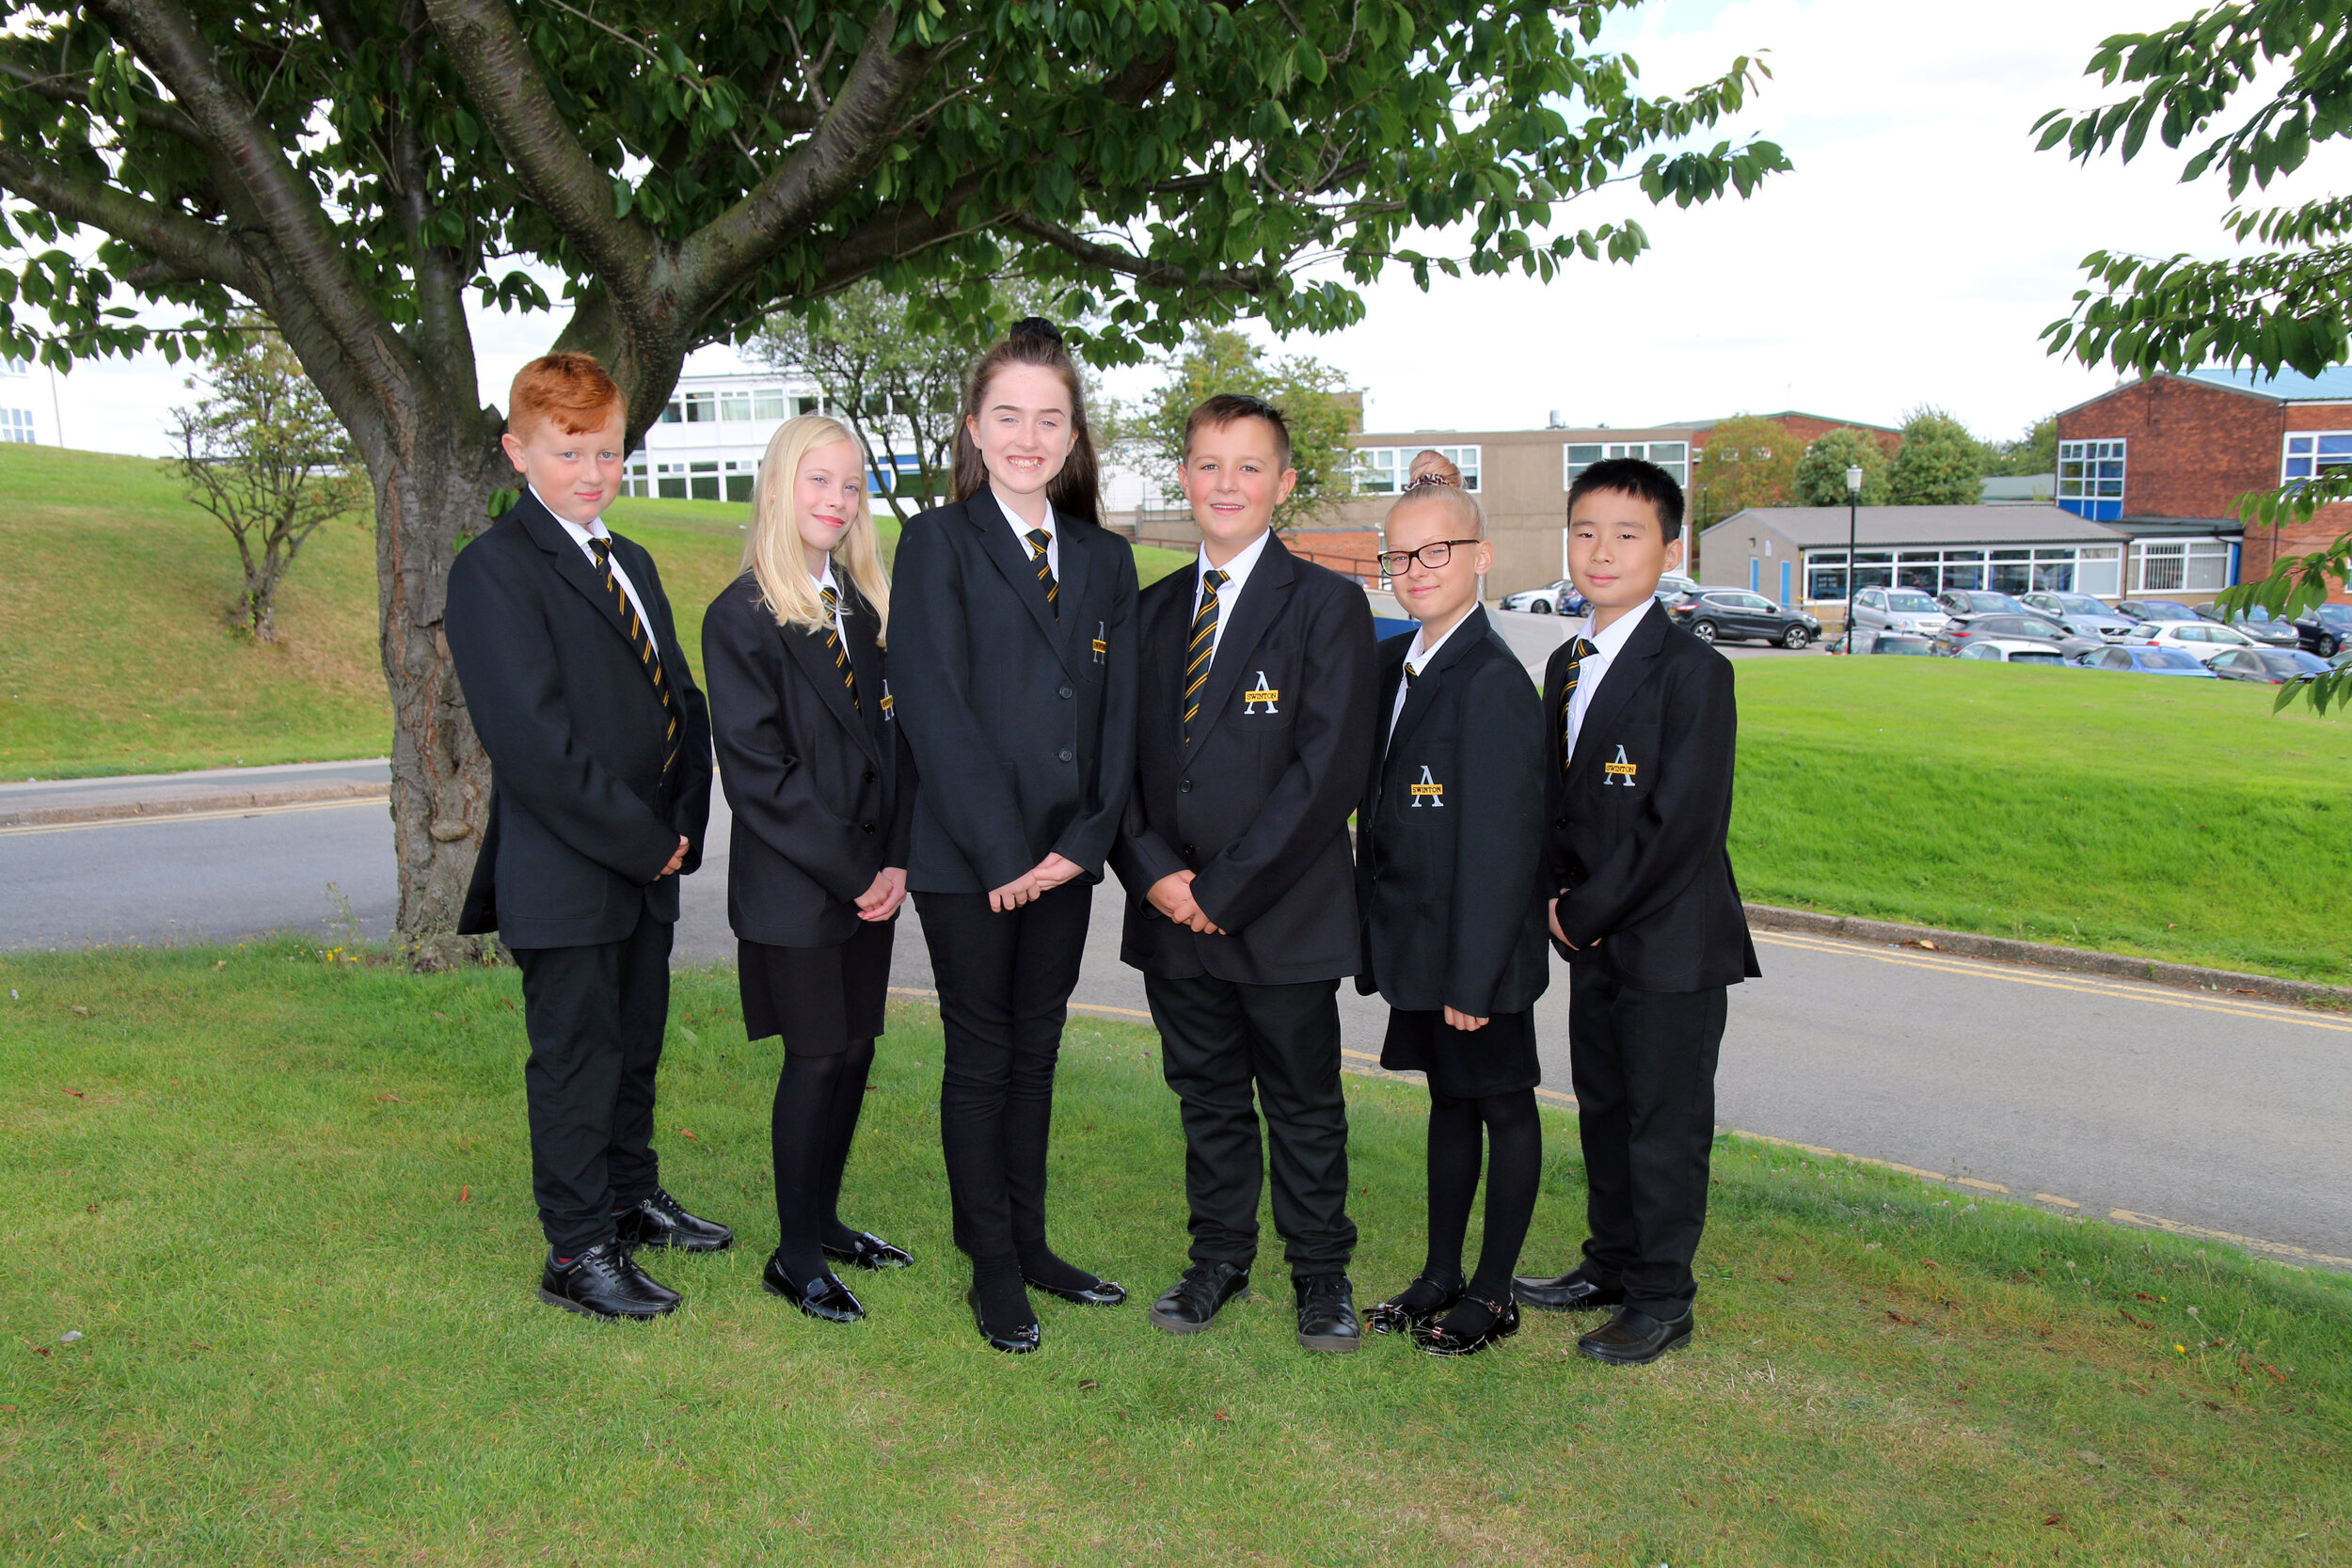 The current Year 7 pupils are settling in well at Swinton Academy. Applications are now open for those due to start secondary school in 2020.